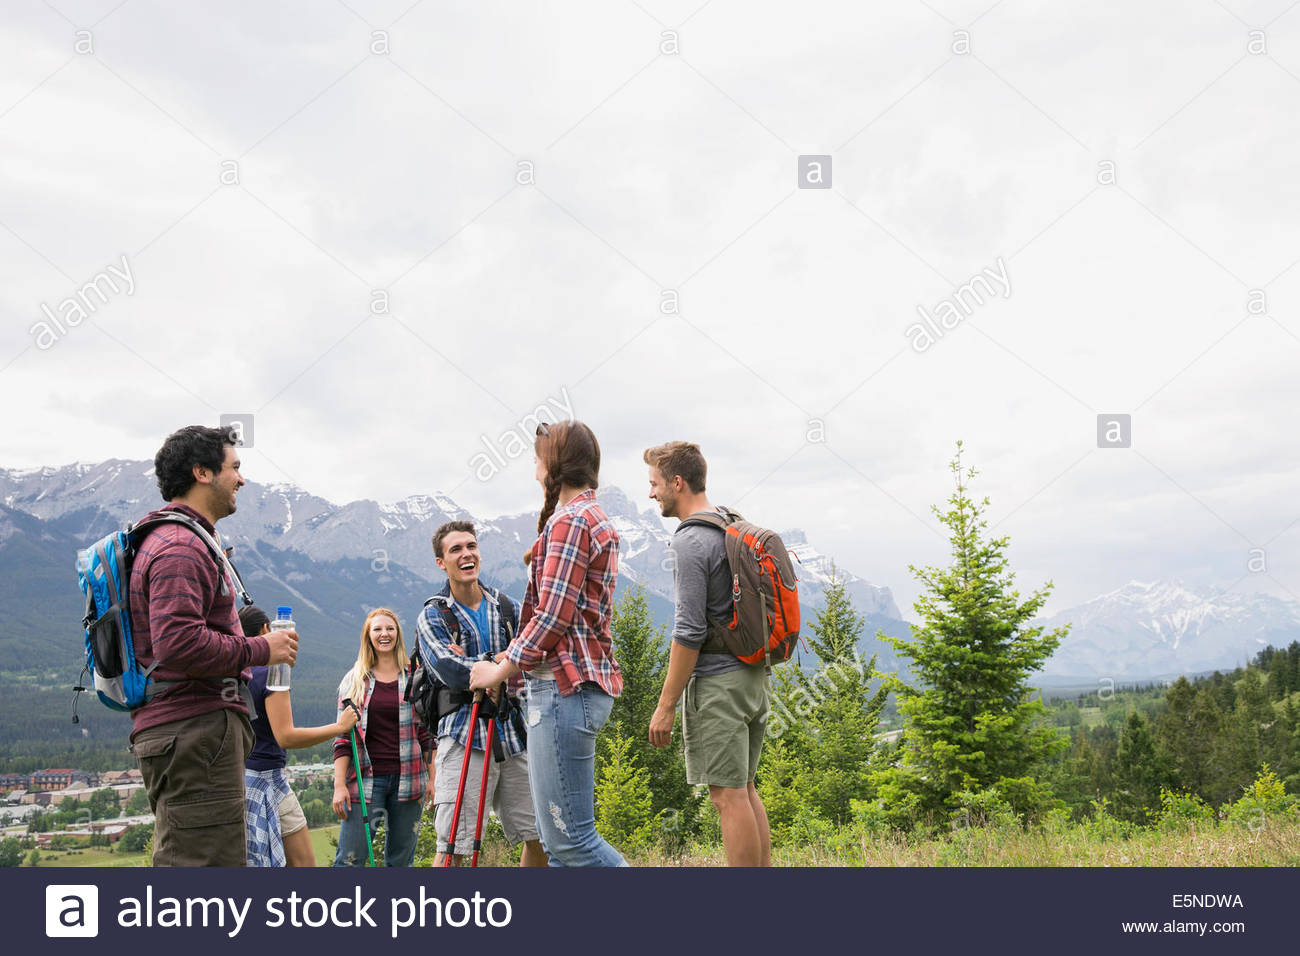 Friends hiking near mountains - Stock Image